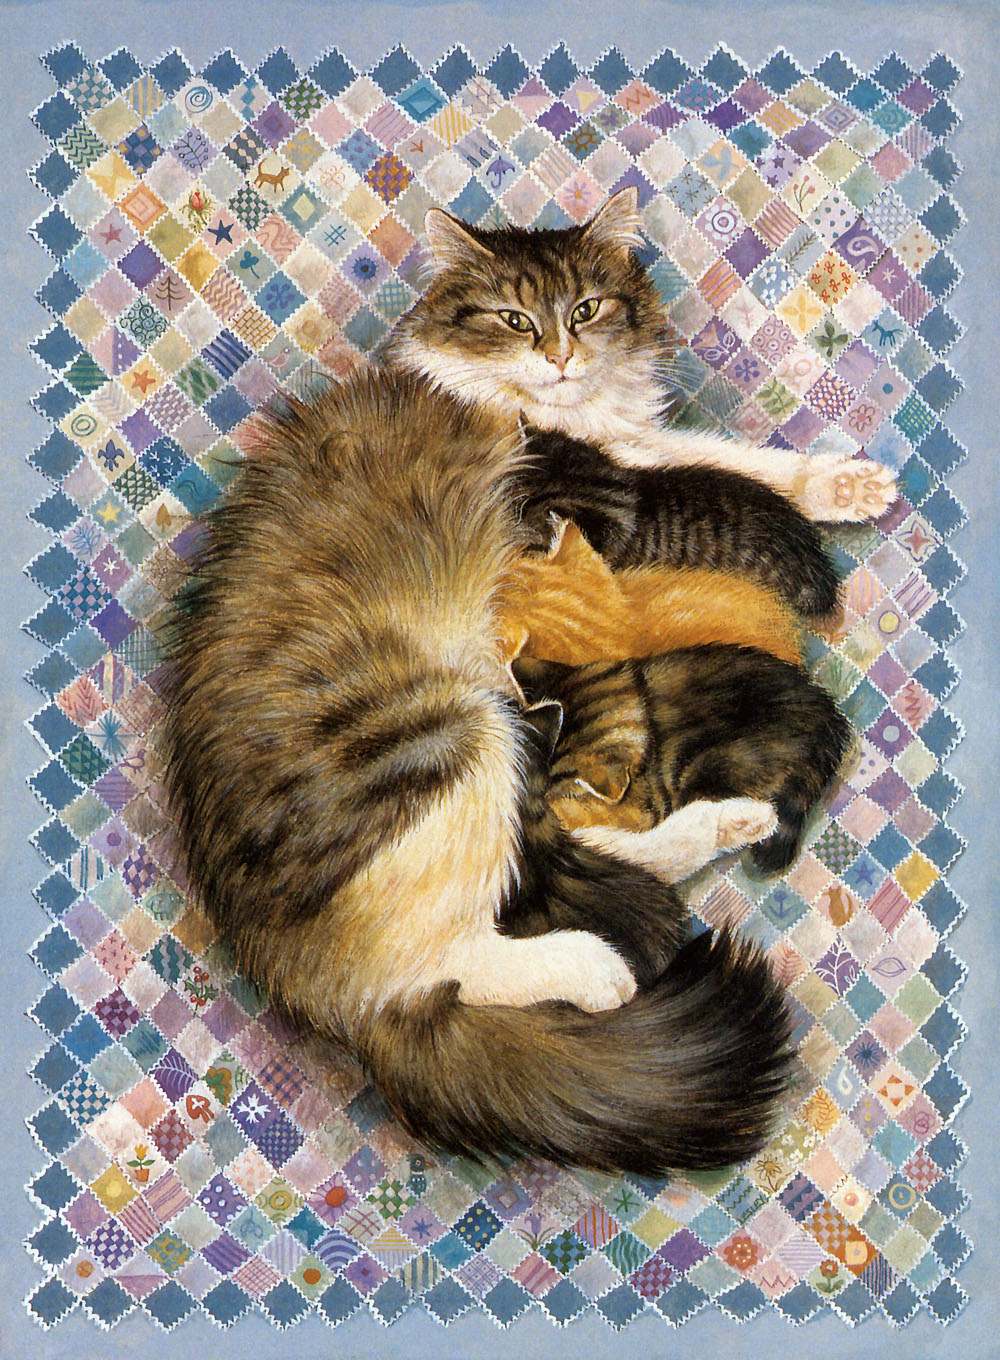 http://funcats.by/uploads/pictures/lesleyanneivory/20110516_039_lesleyanneivory.jpg